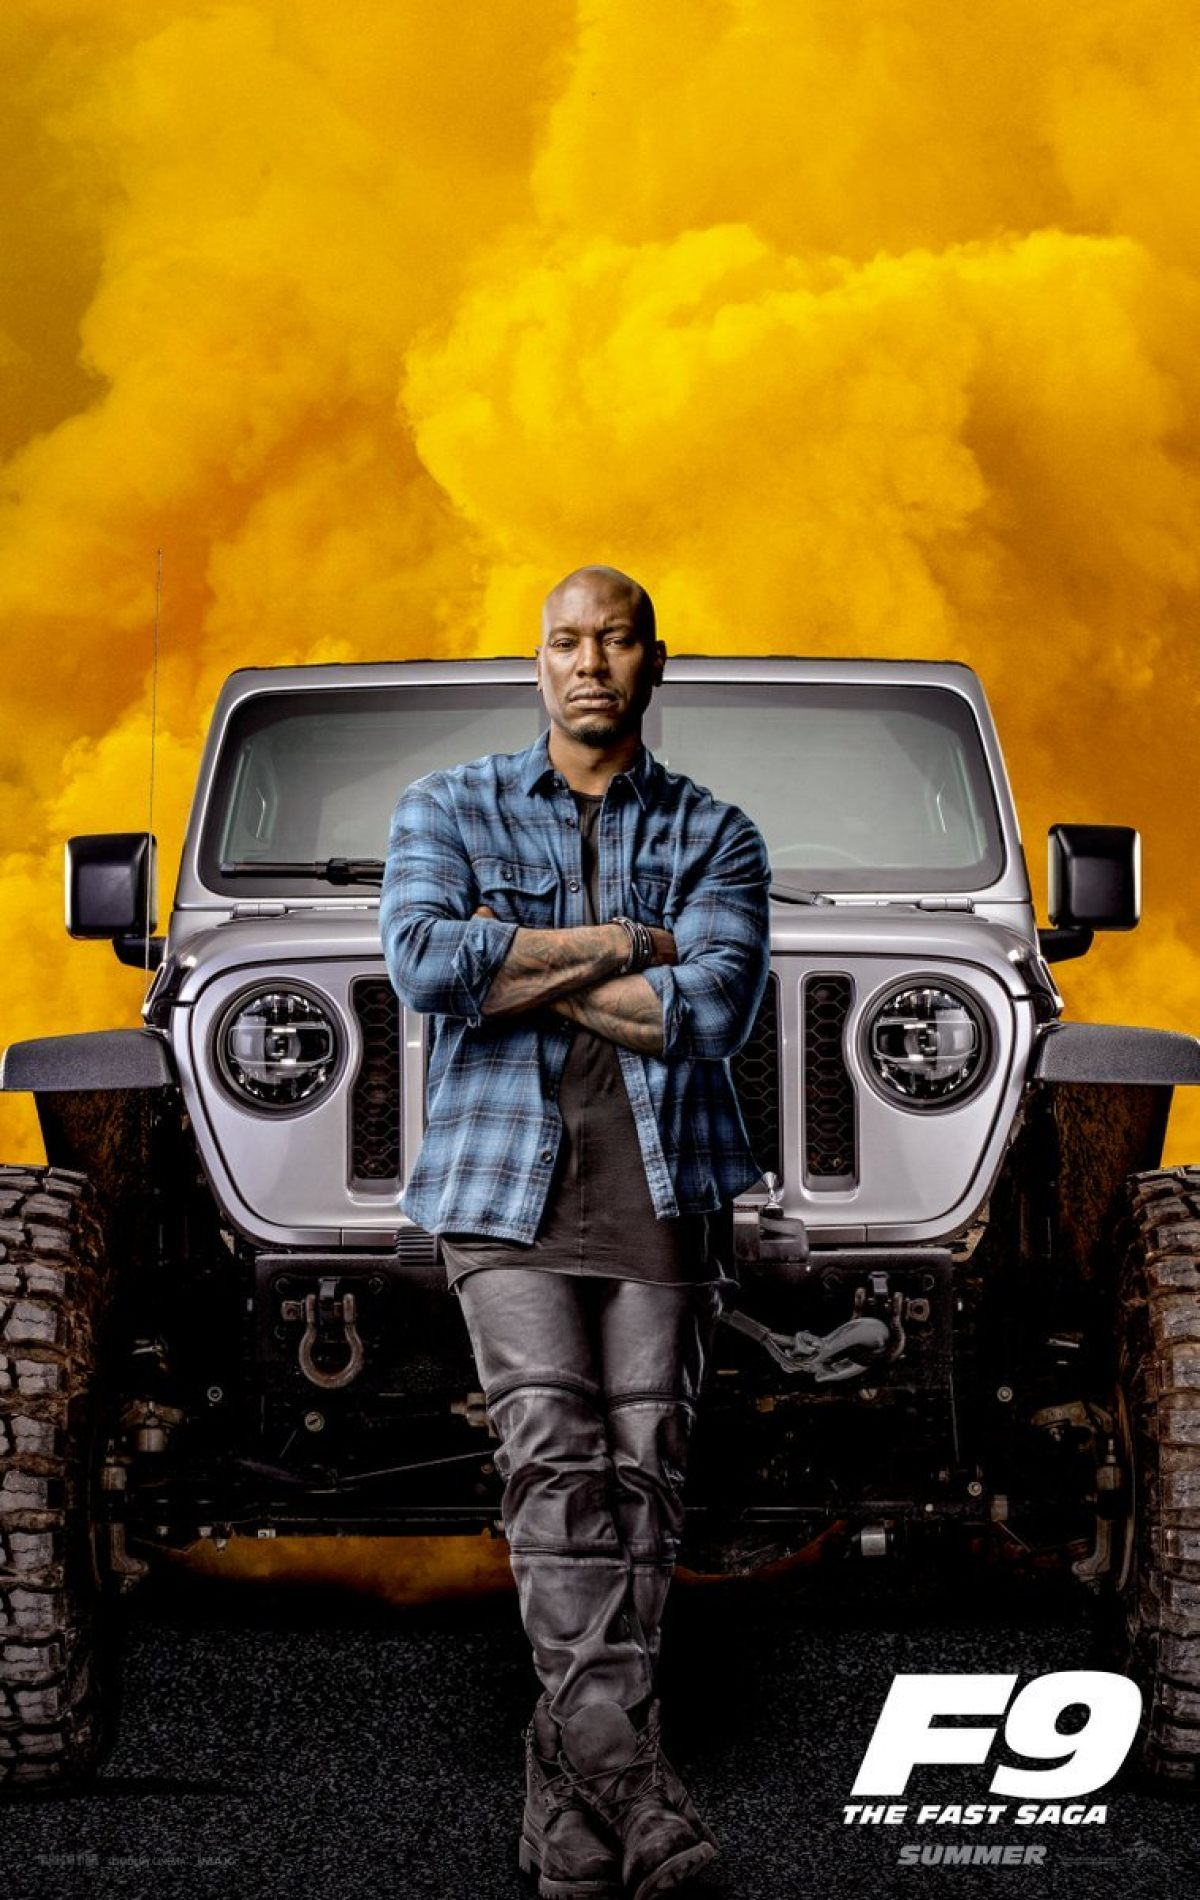 Marco Grob Photographs Poster Art for Fast & Furious 9